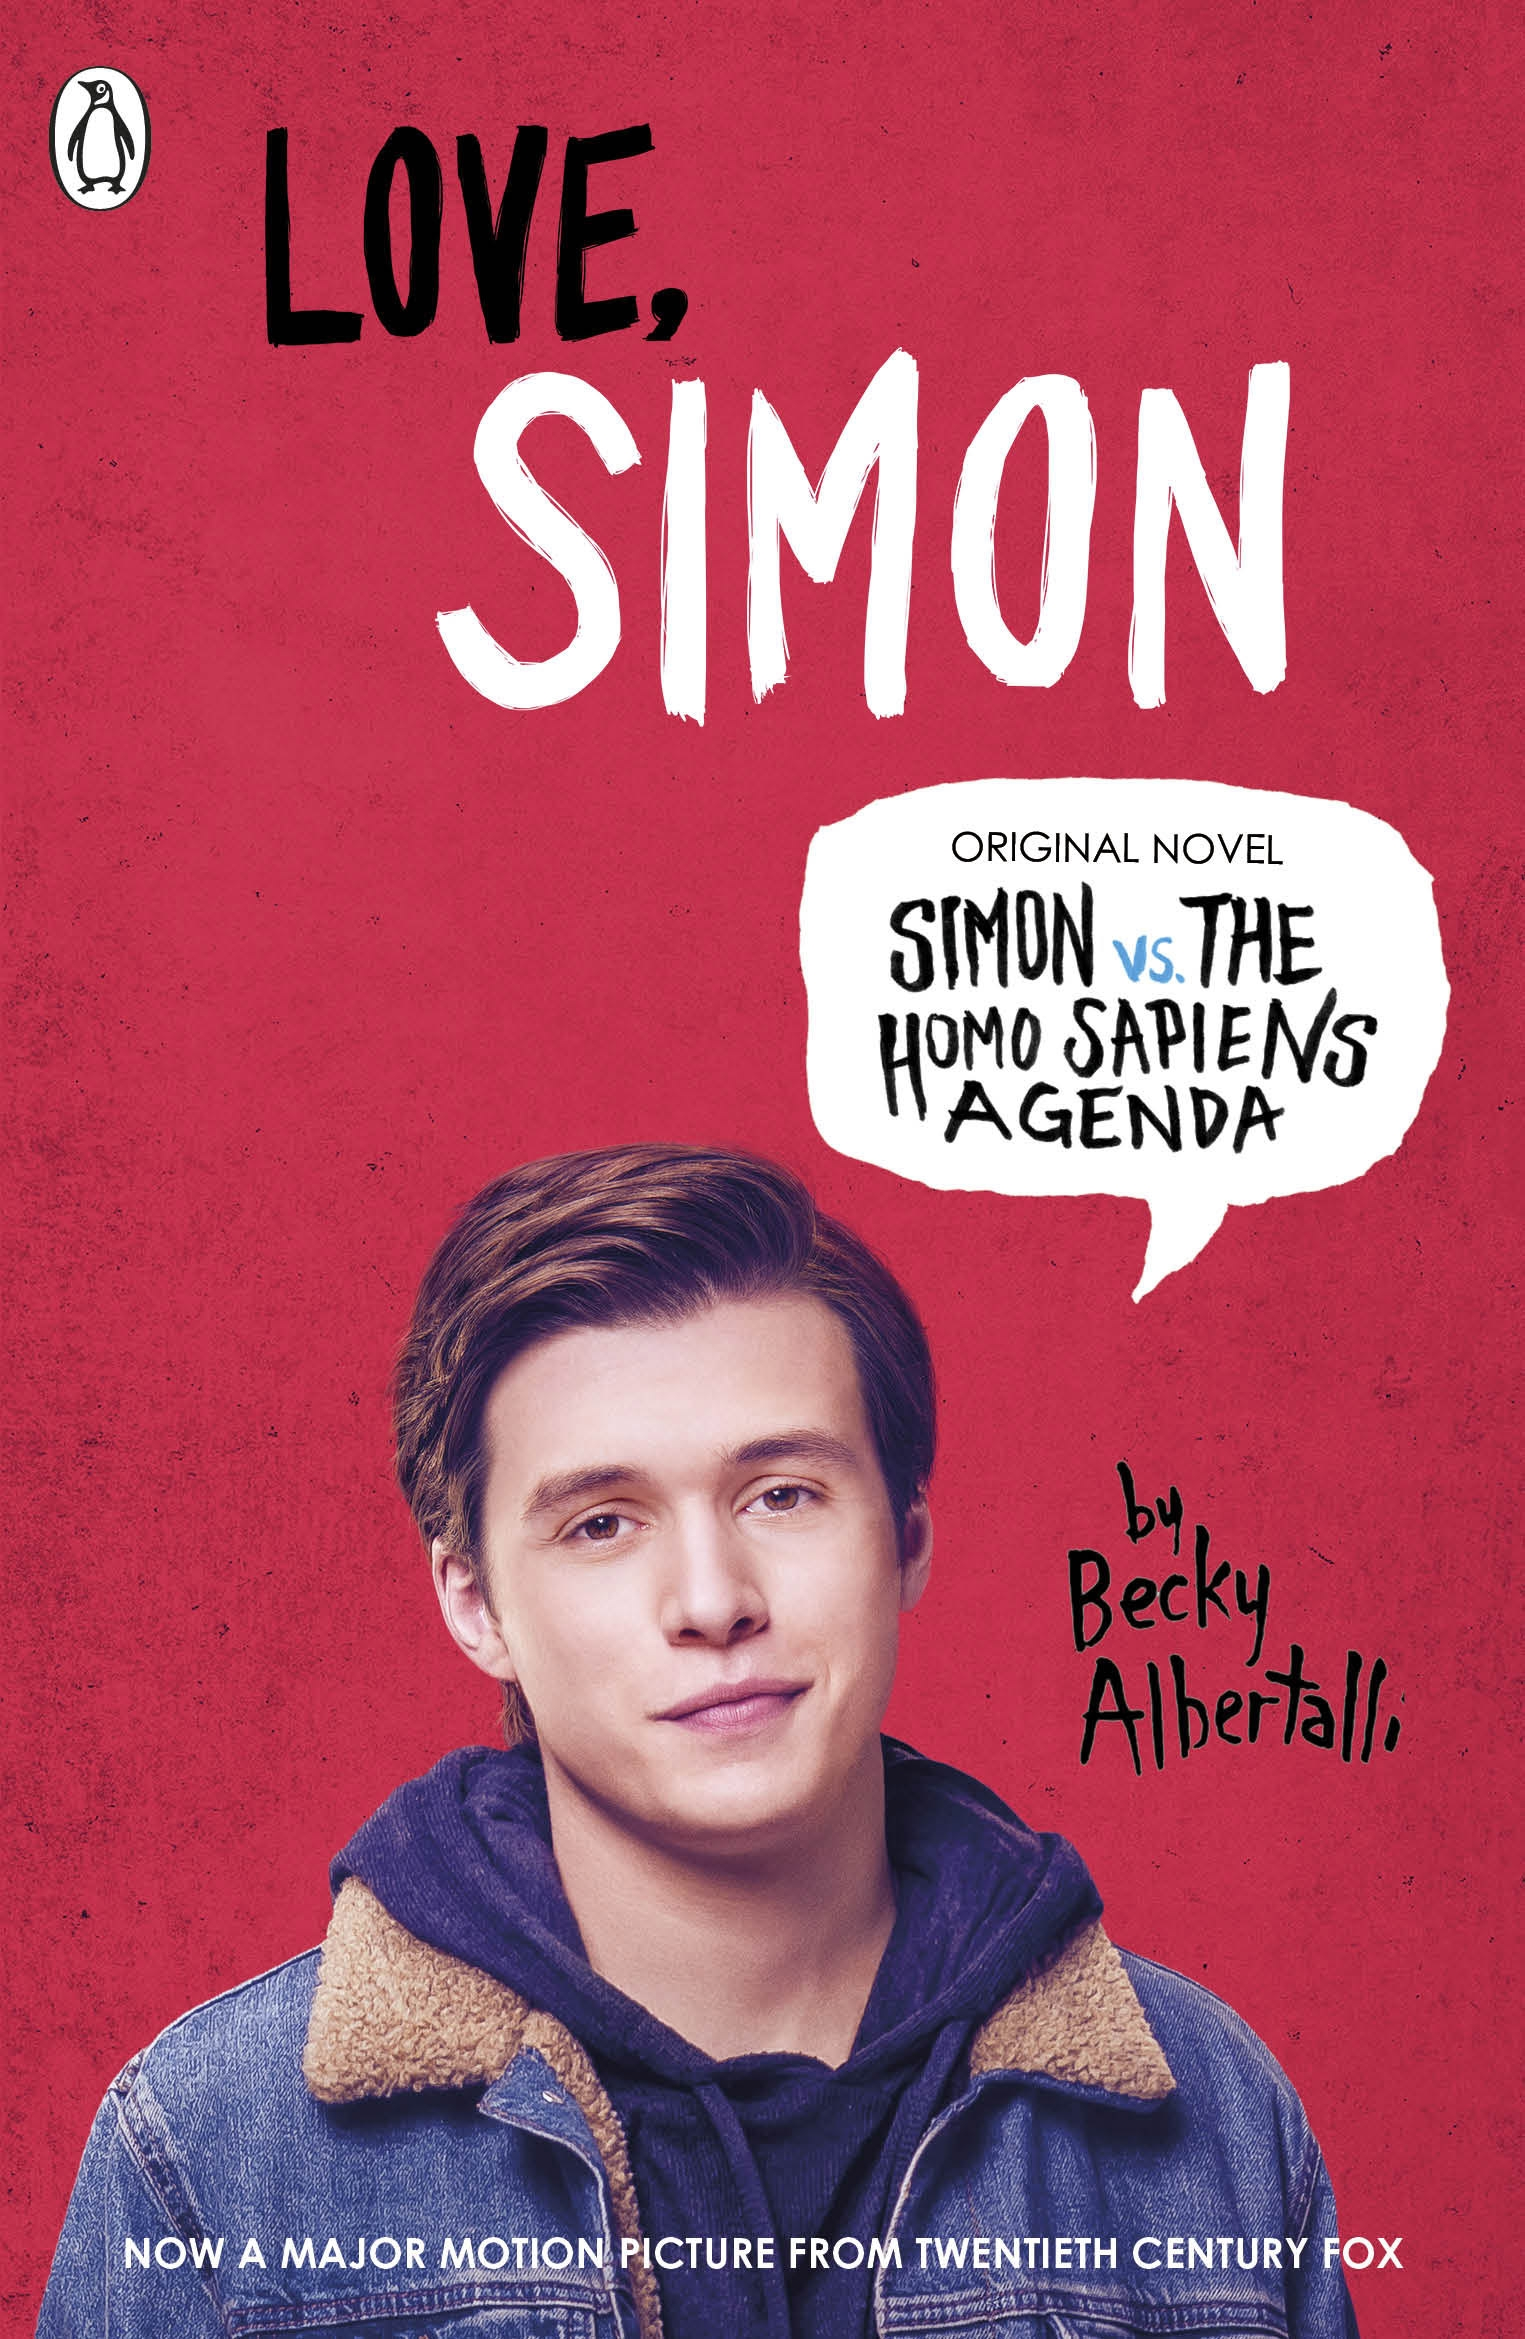 Love Simon (MTI) : Simon Vs The Homo Sapiens